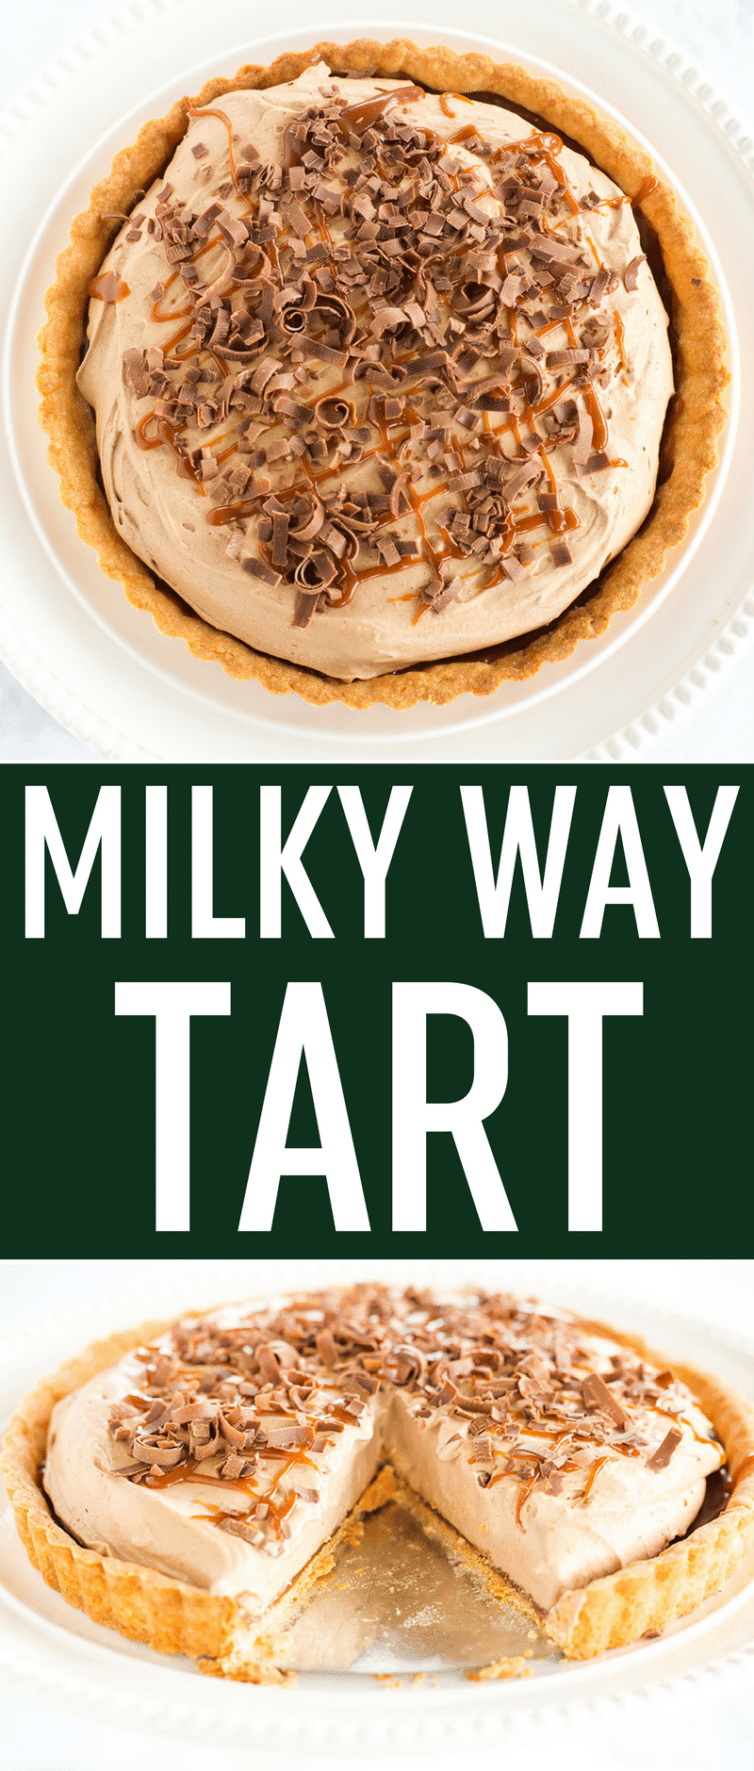 Milky Way Tart - A pate sucree crust is filled with caramel sauce and whipped milk chocolate mousse, then topped with a drizzle of caramel and chocolate curls.